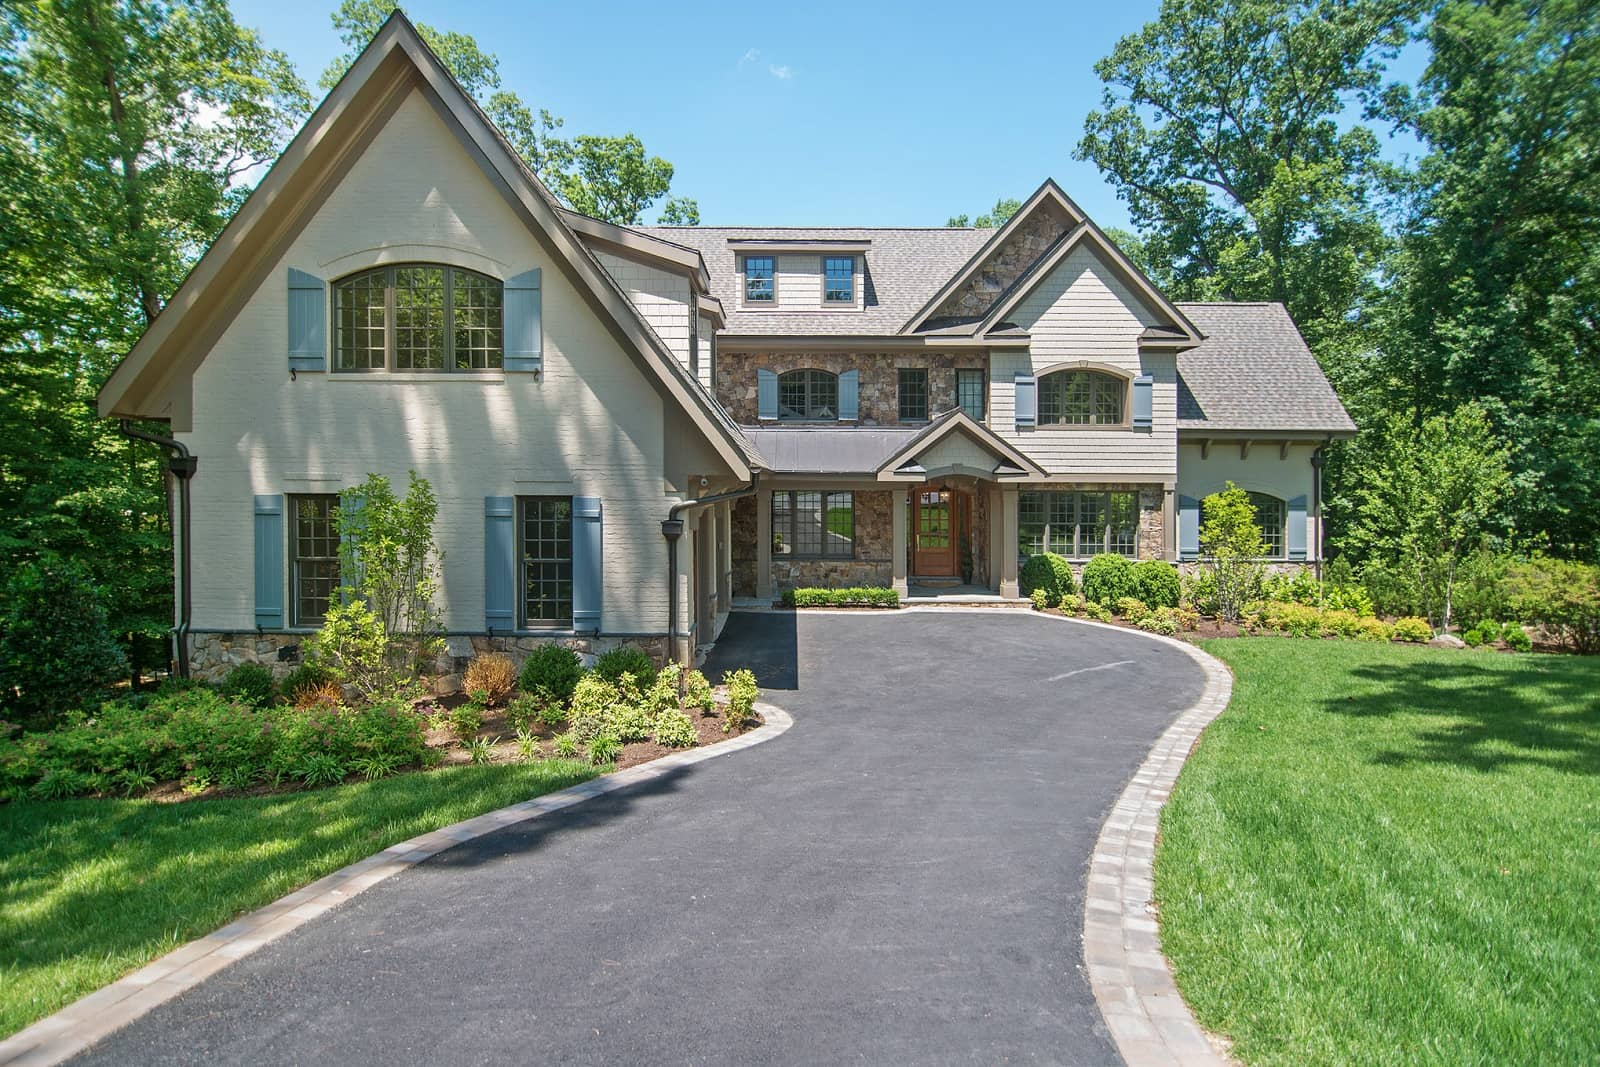 Real Estate Photography in Arlington - Front View